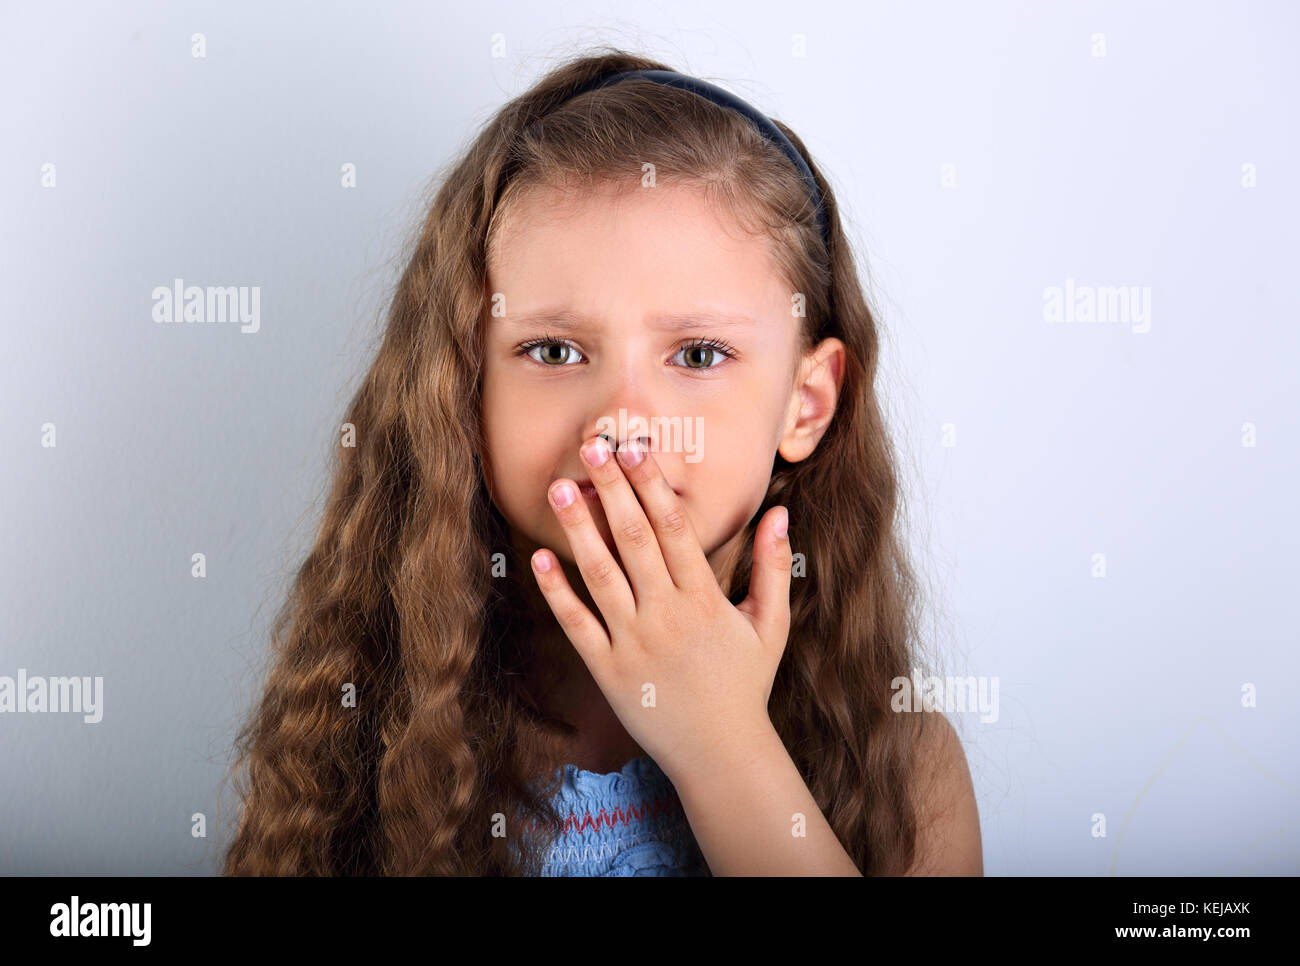 Child Afraid Face